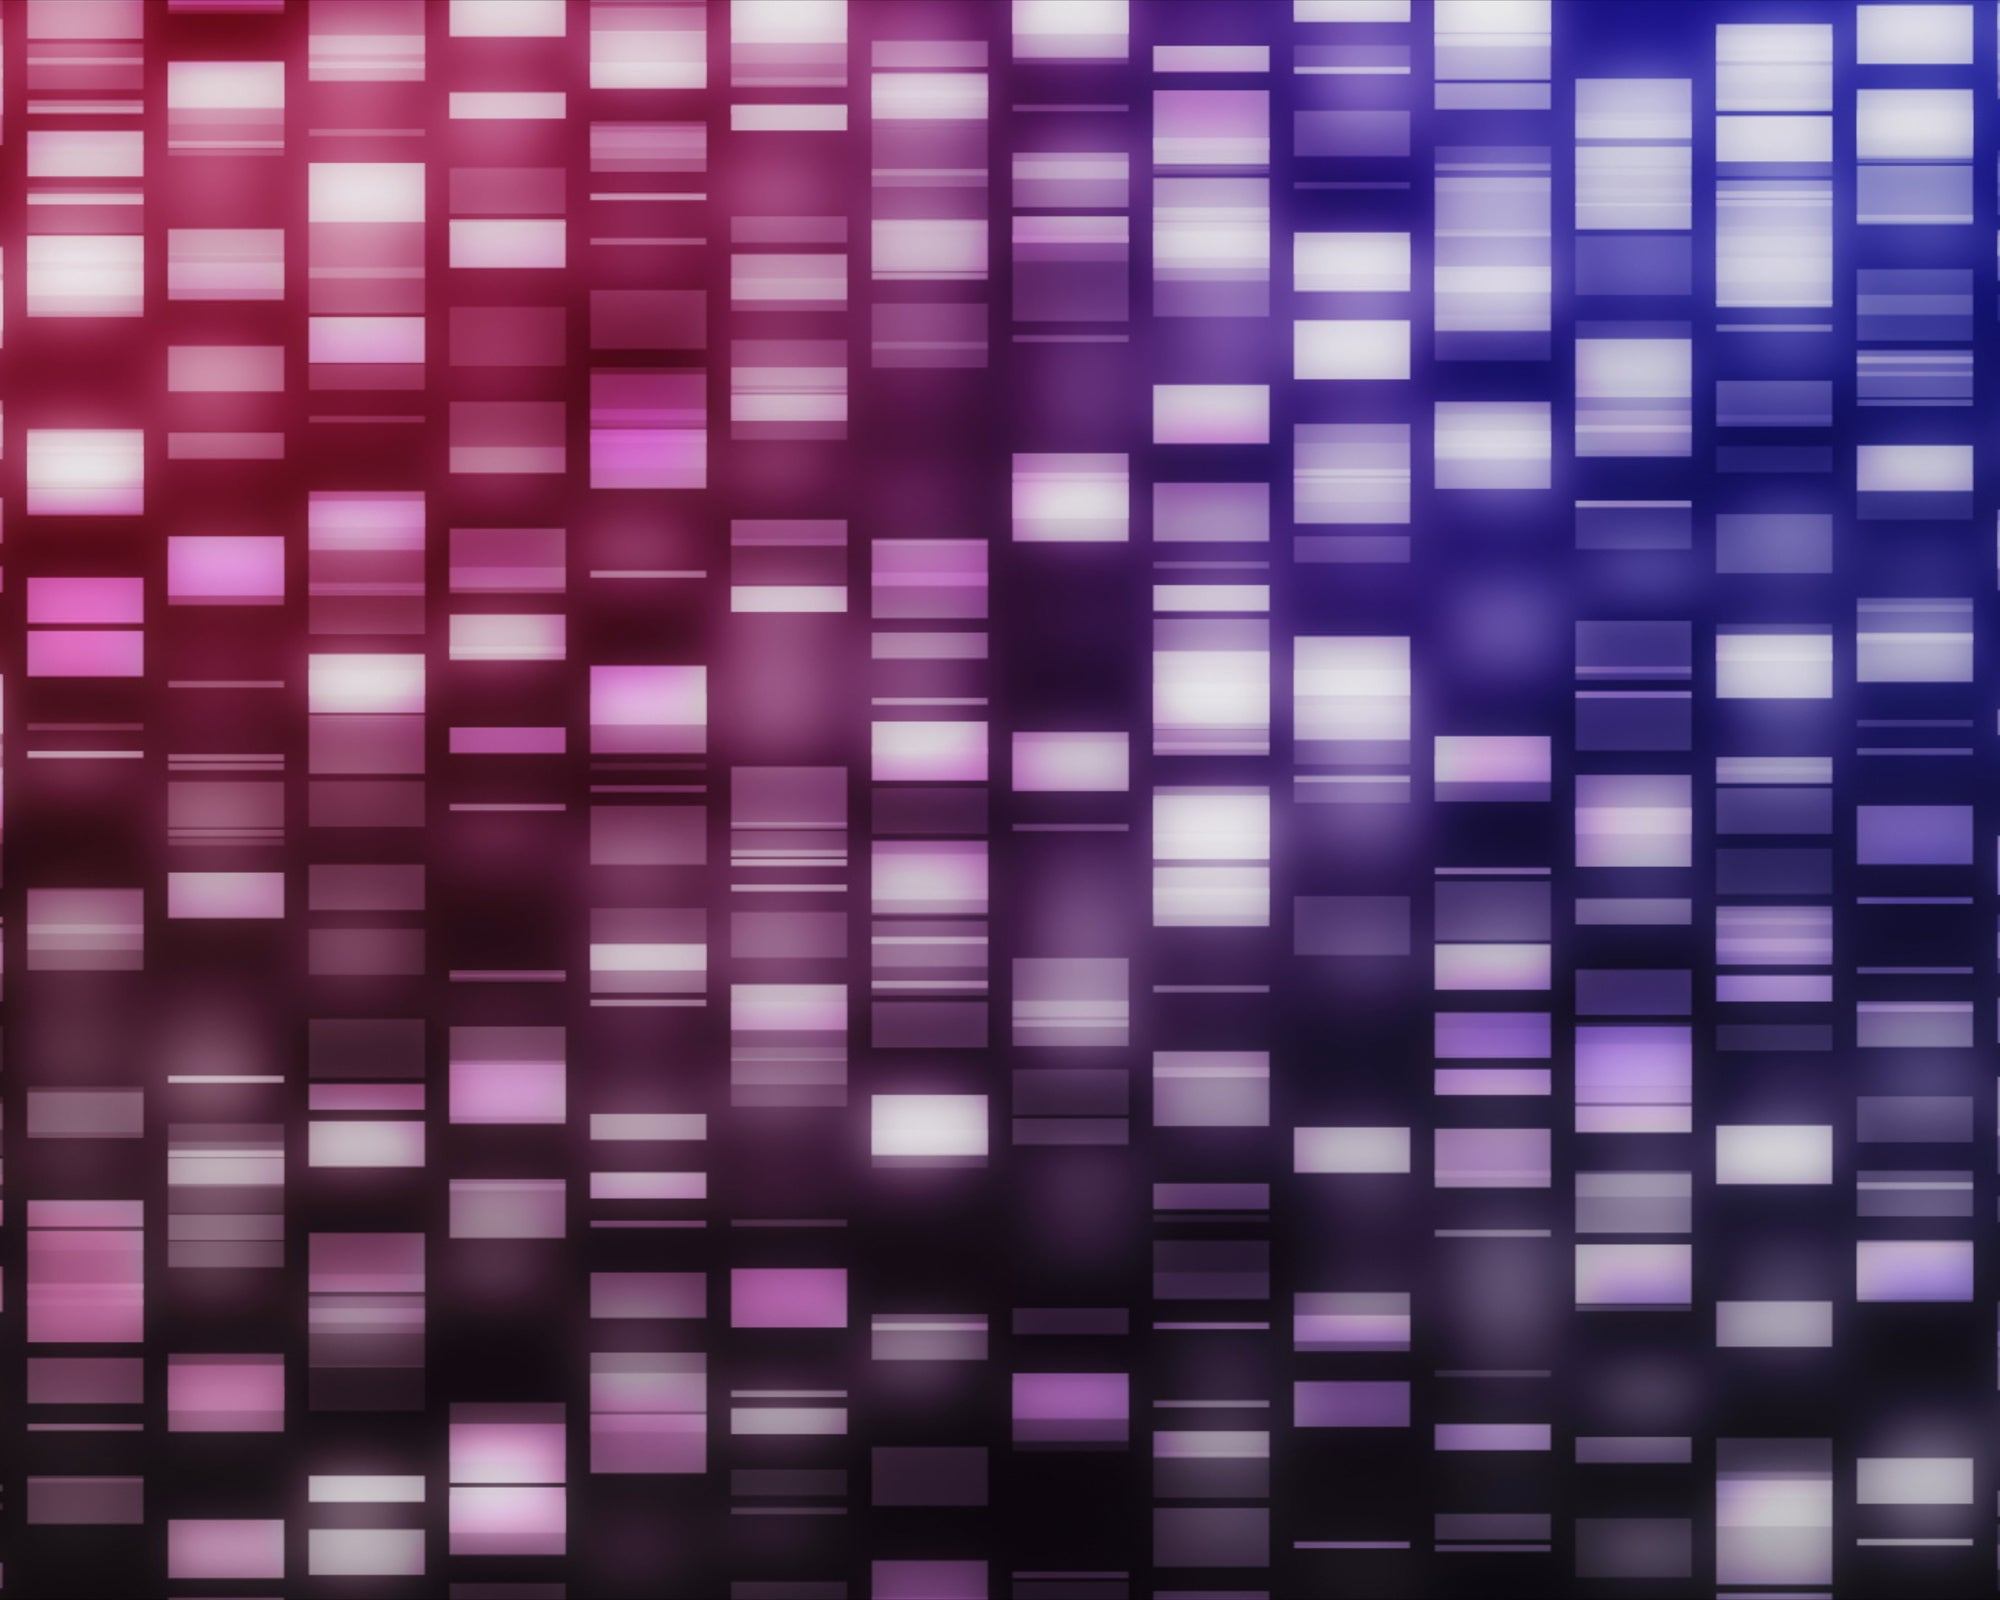 23andMe can now test for BRCA mutations. Here's what you need to know.